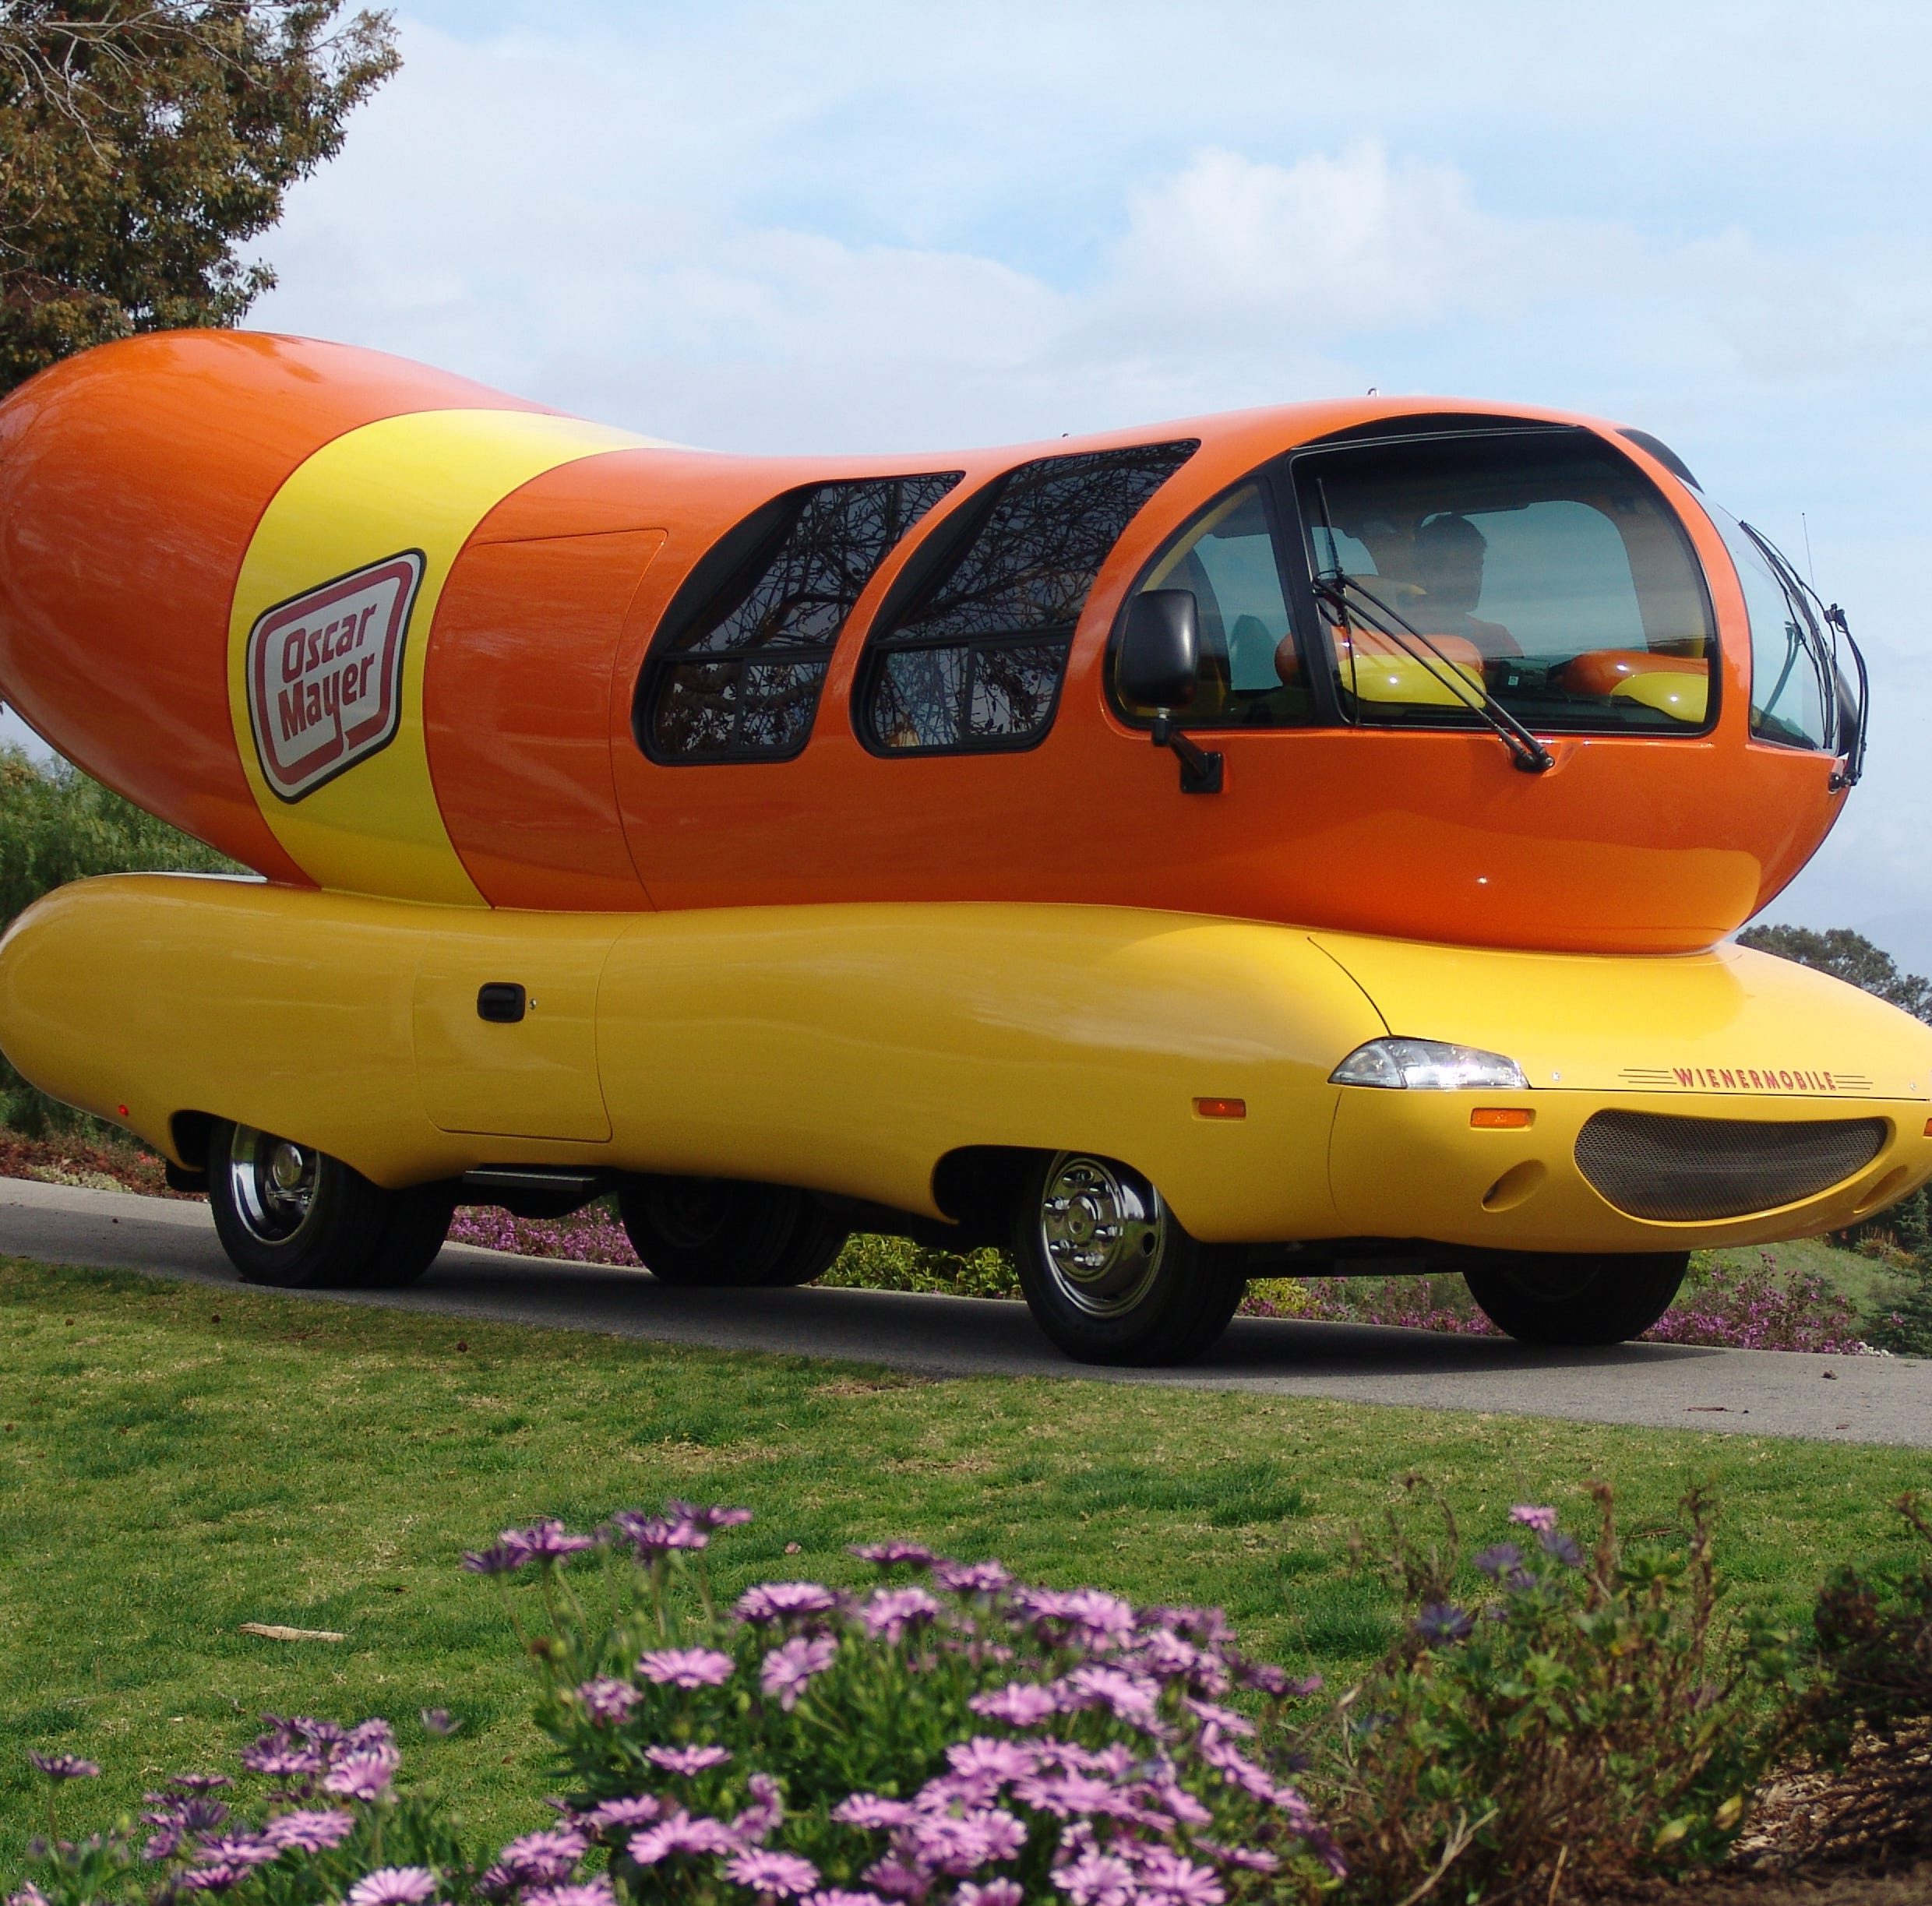 Quick, back to the Oscar Mayer Wienermobile, Robin |Mark Hinson